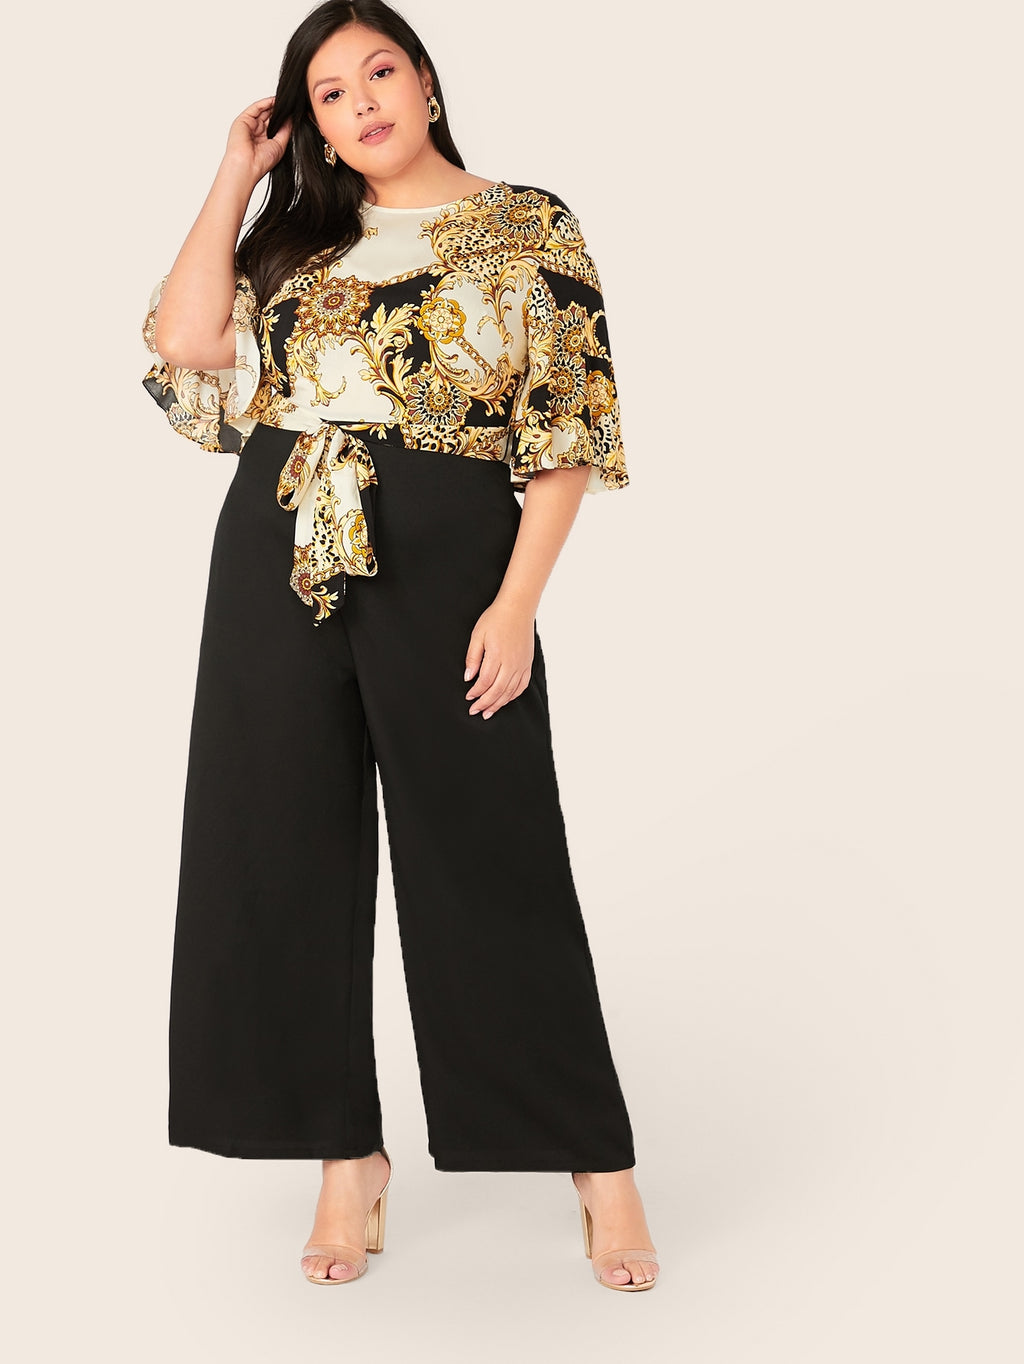 Plus Size Designer Chain Print Self Belted Jumpsuit